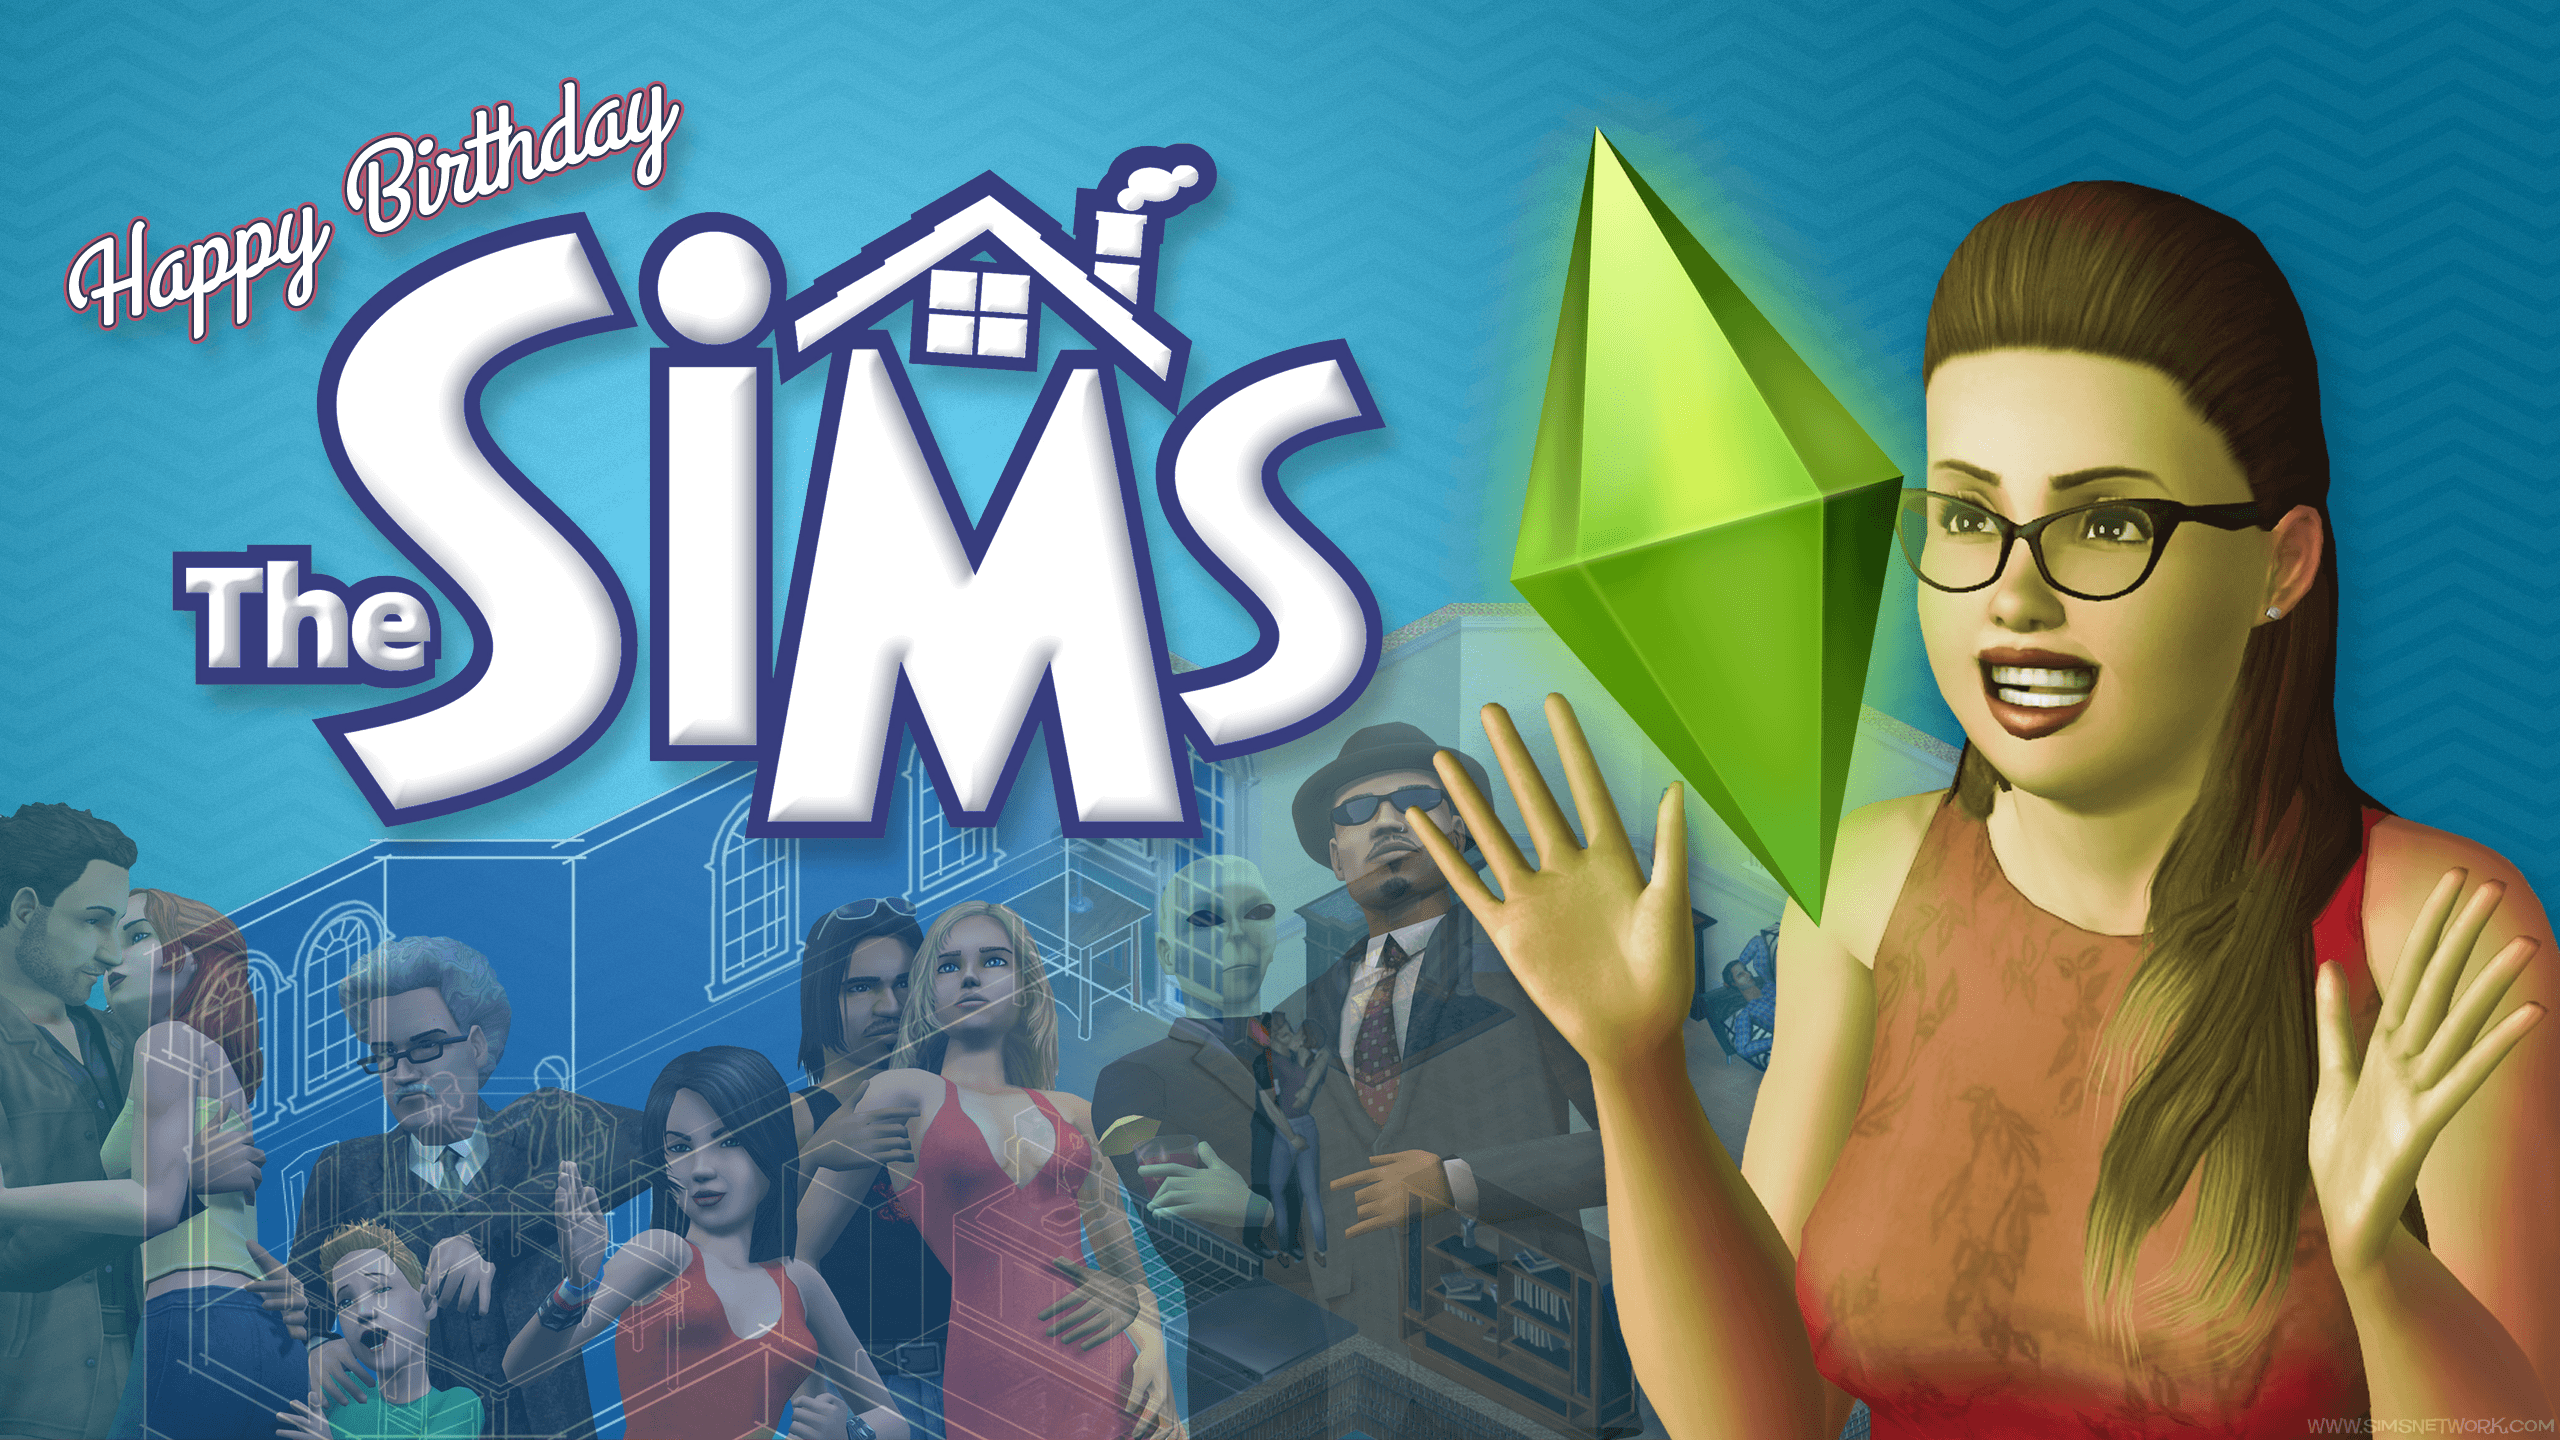 The Sims Anniversary Wallpapers!